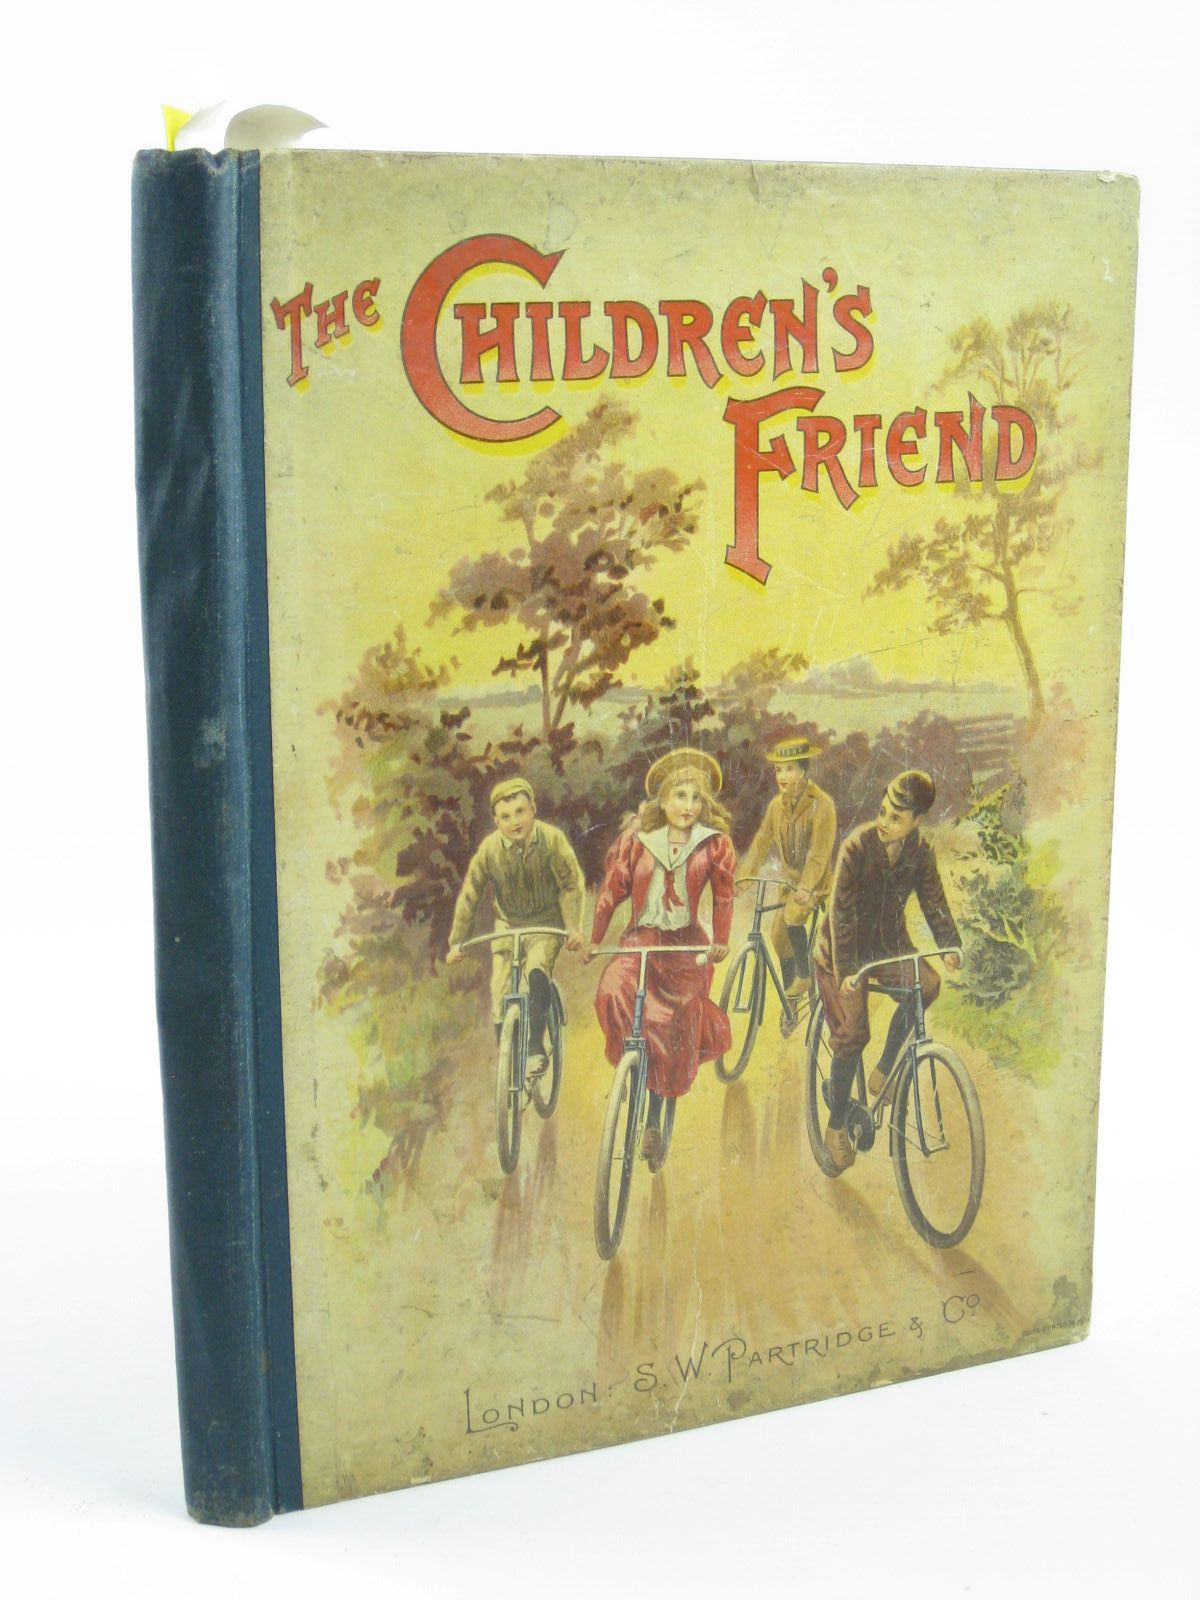 Photo of THE CHILDREN'S FRIEND VOLUME XXXVIII - 1898 written by Waterworth, E.M. Bingham, Clifton Rogers, Eva C. Chappell, Jennie et al,  illustrated by Wain, Louis Rainey, W. Staniland, C.J. et al.,  published by S.W. Partridge & Co. (STOCK CODE: 1501397)  for sale by Stella & Rose's Books